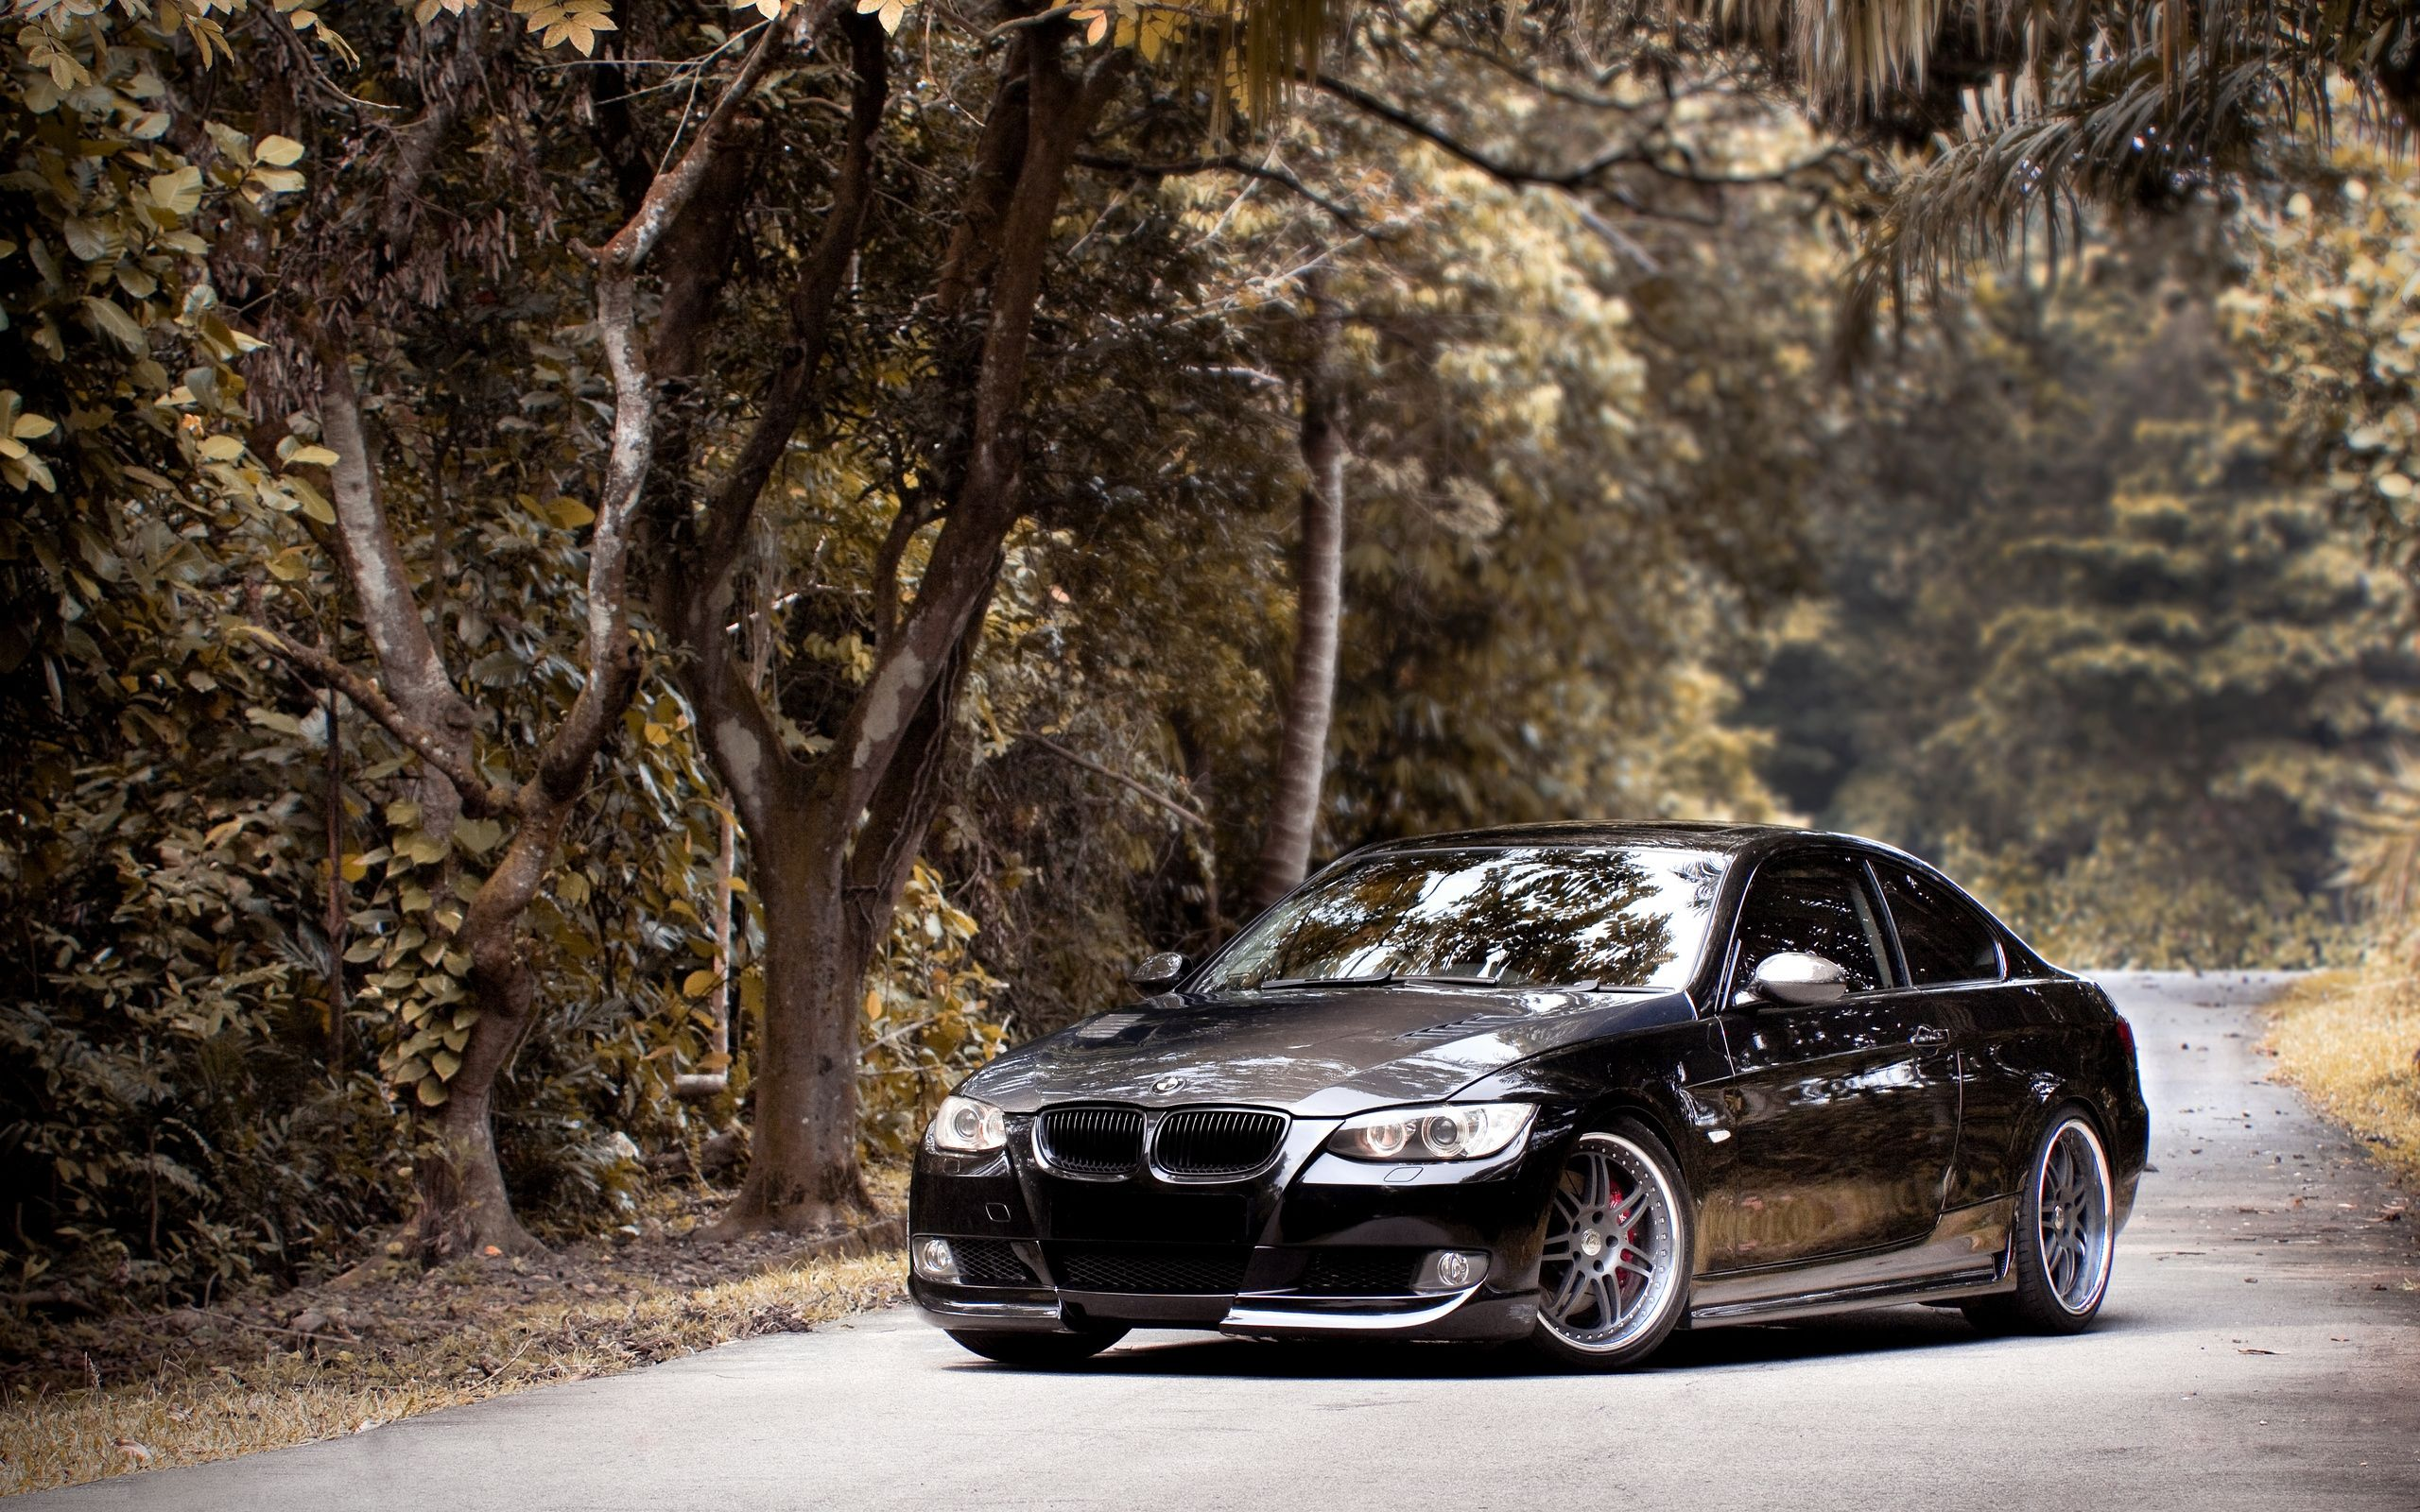 Bmw 335i wallpaper